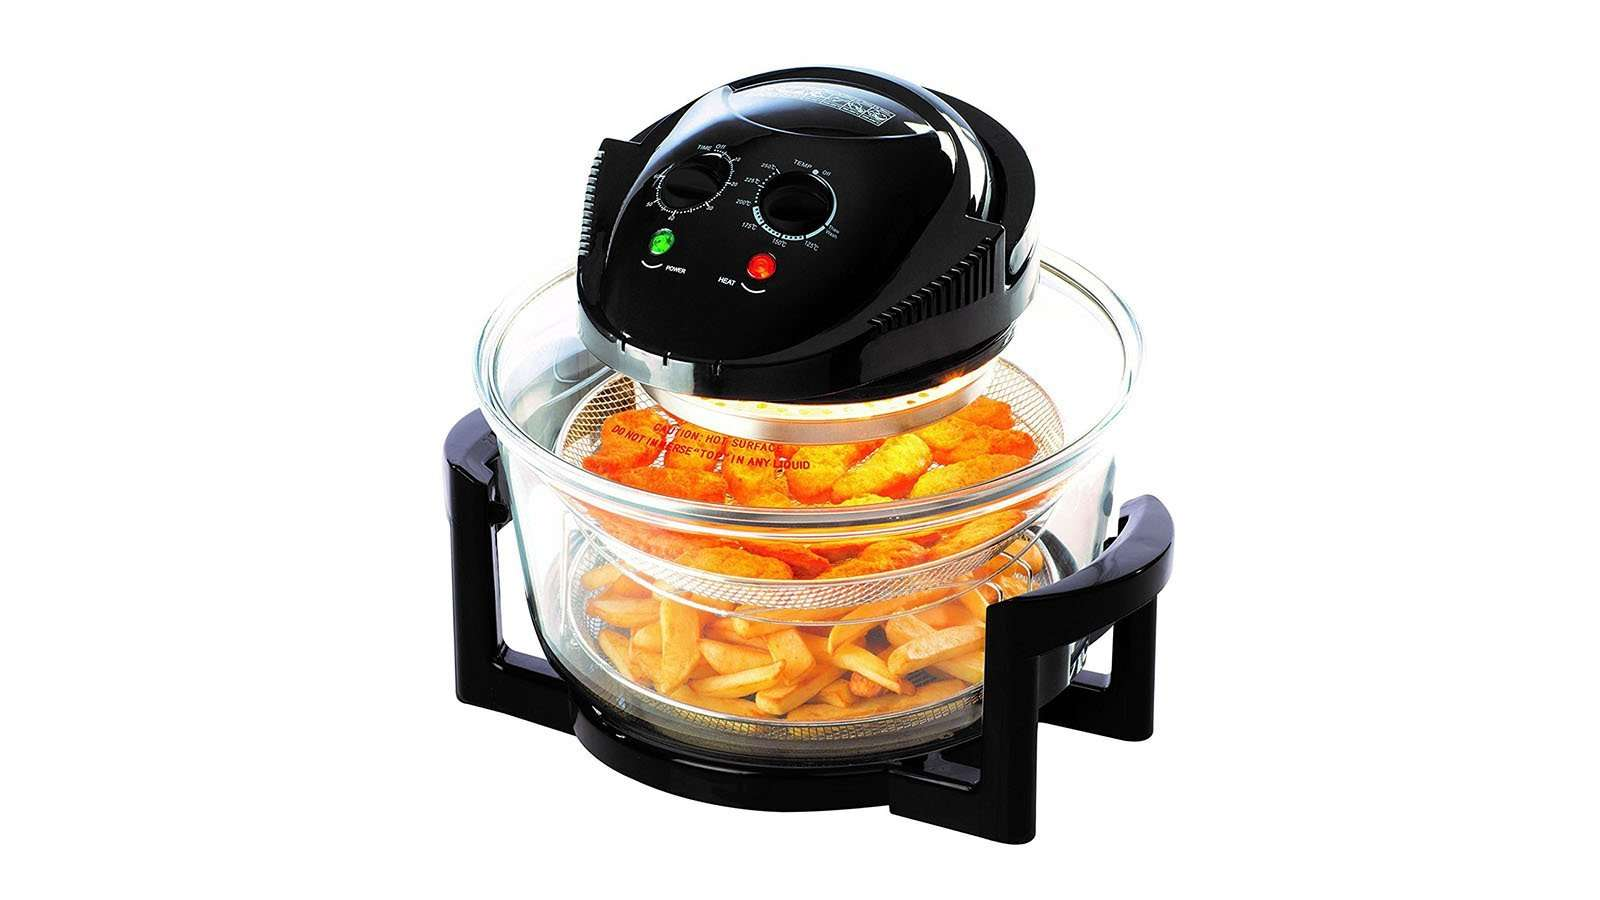 Daewoo Oven Manual Auto Electrical Wiring Diagram Rice Cooker Best Halogen 2018 The 6 Cookers Ranked